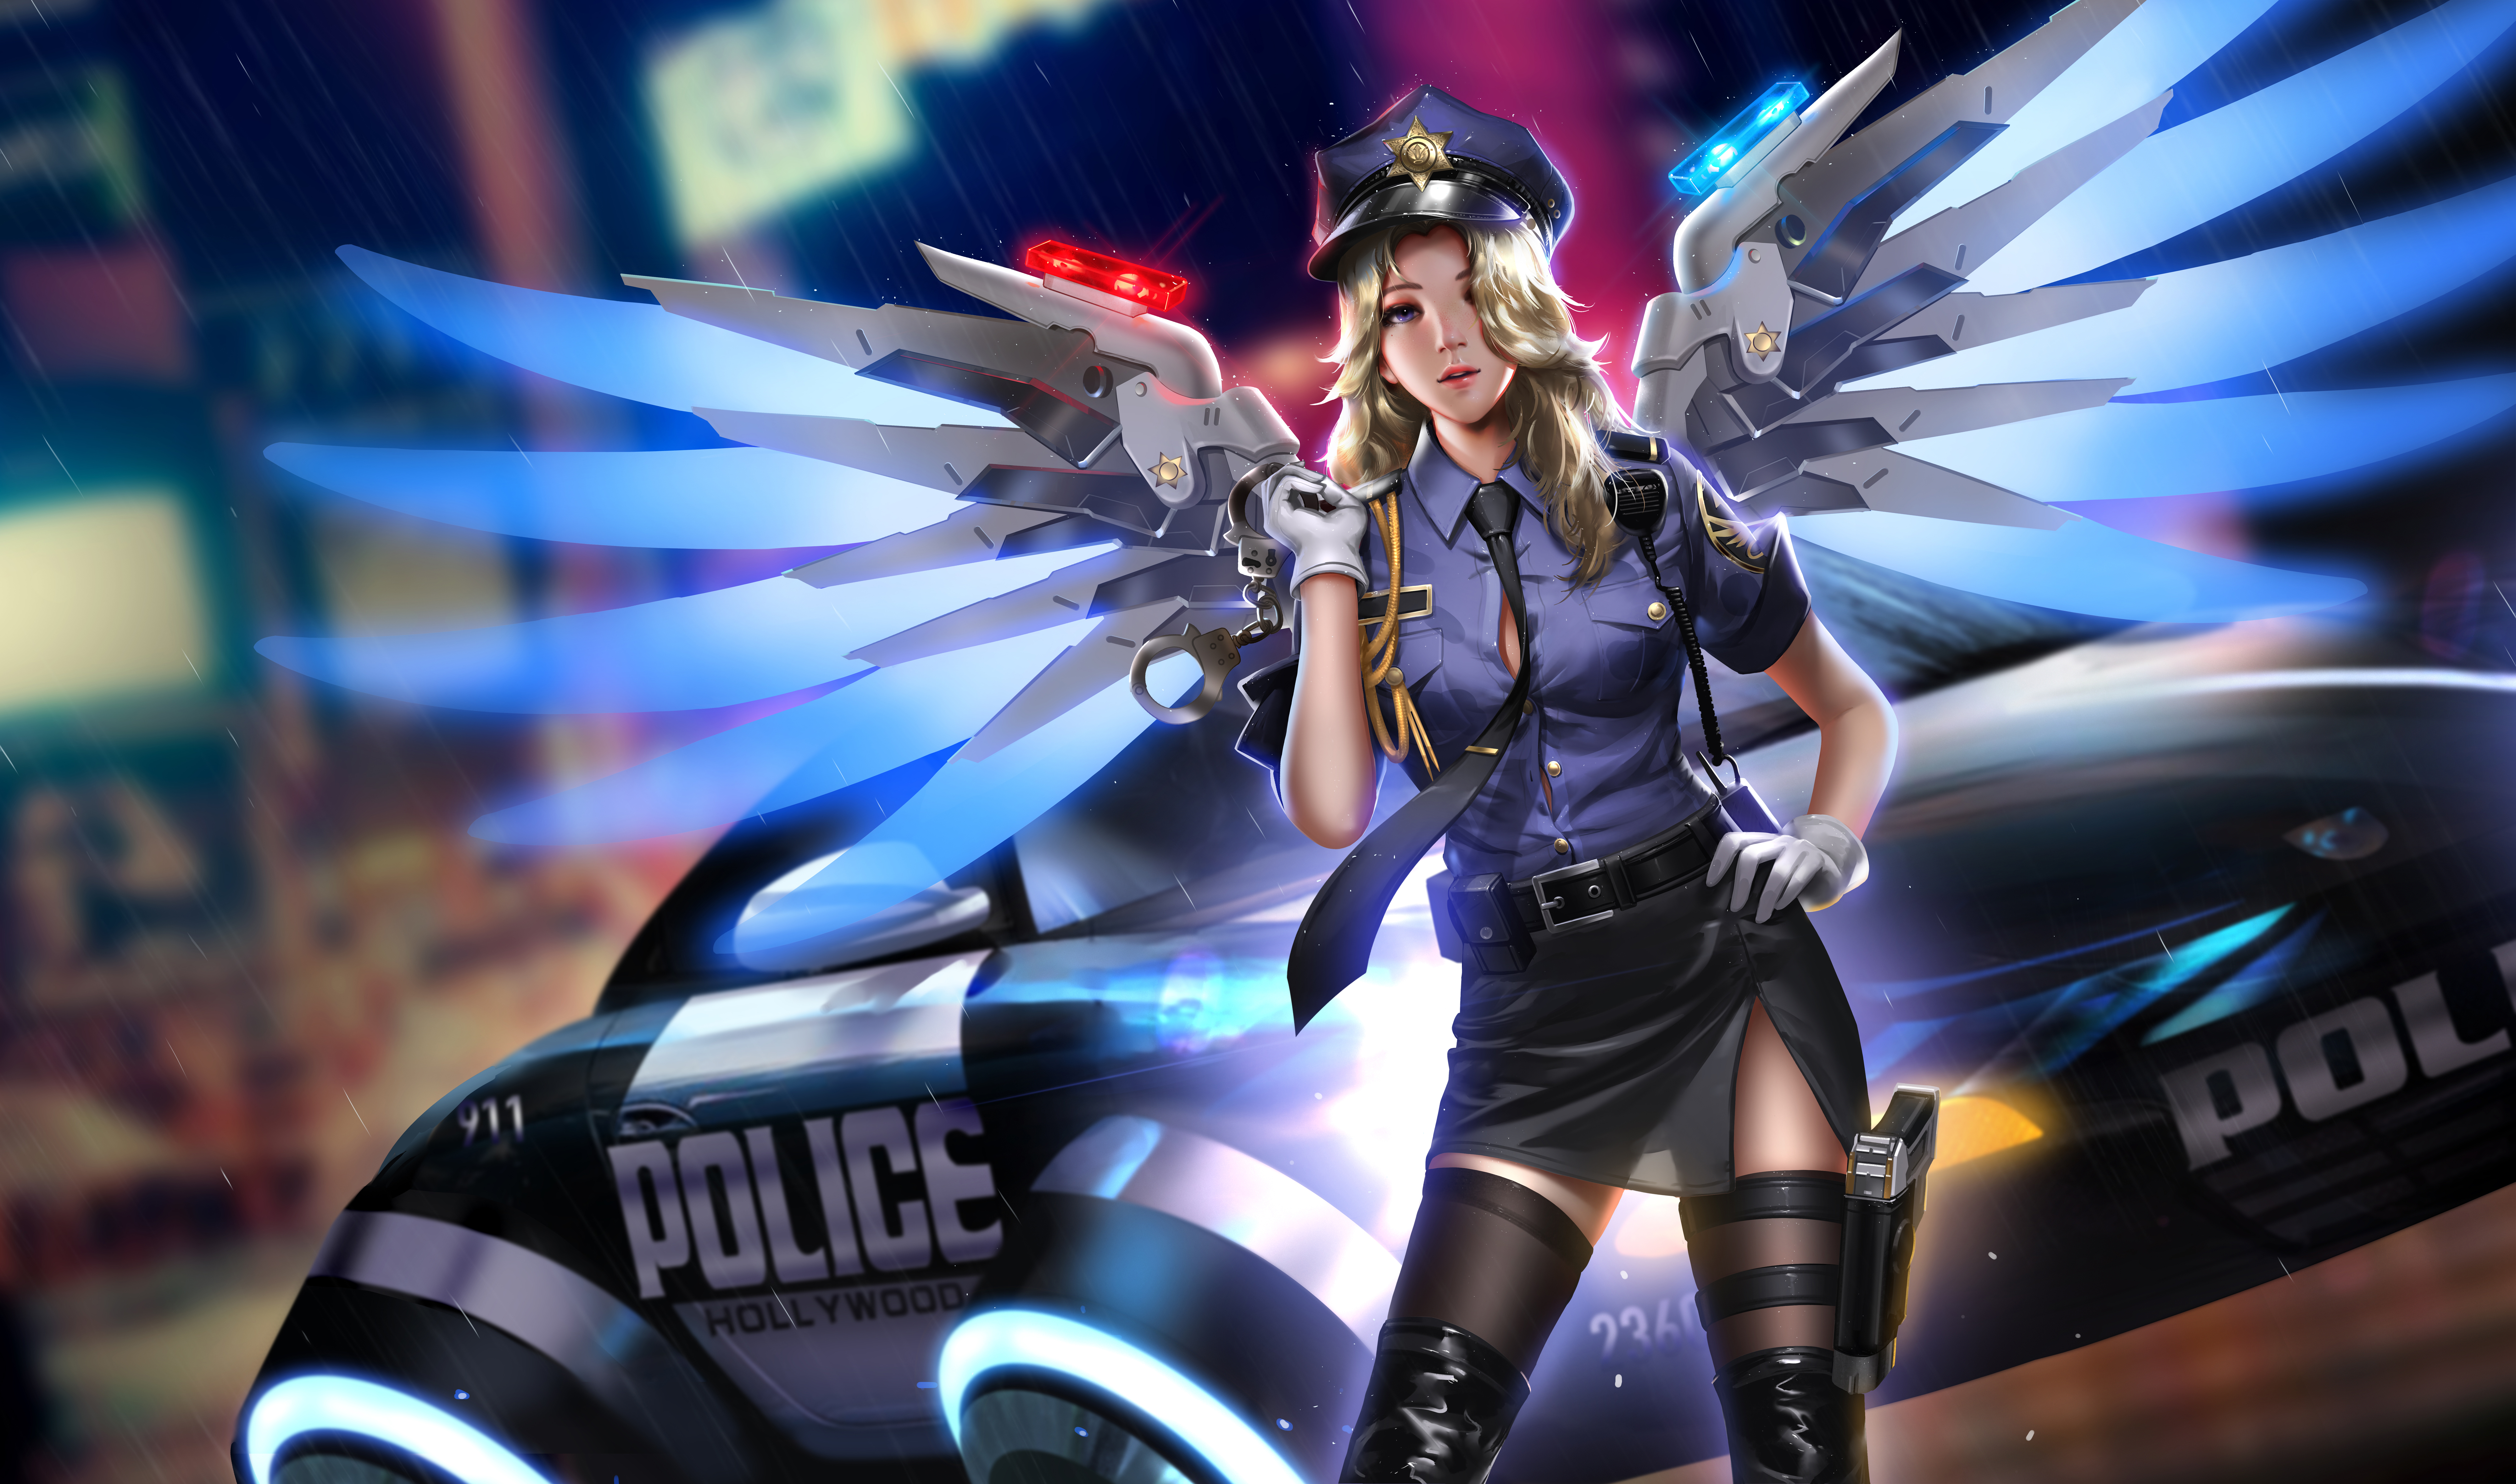 Mercy Overwatch Overwatch Video Games Video Game Girls Berets Video Game Characters Blonde Police Wo 8000x4720